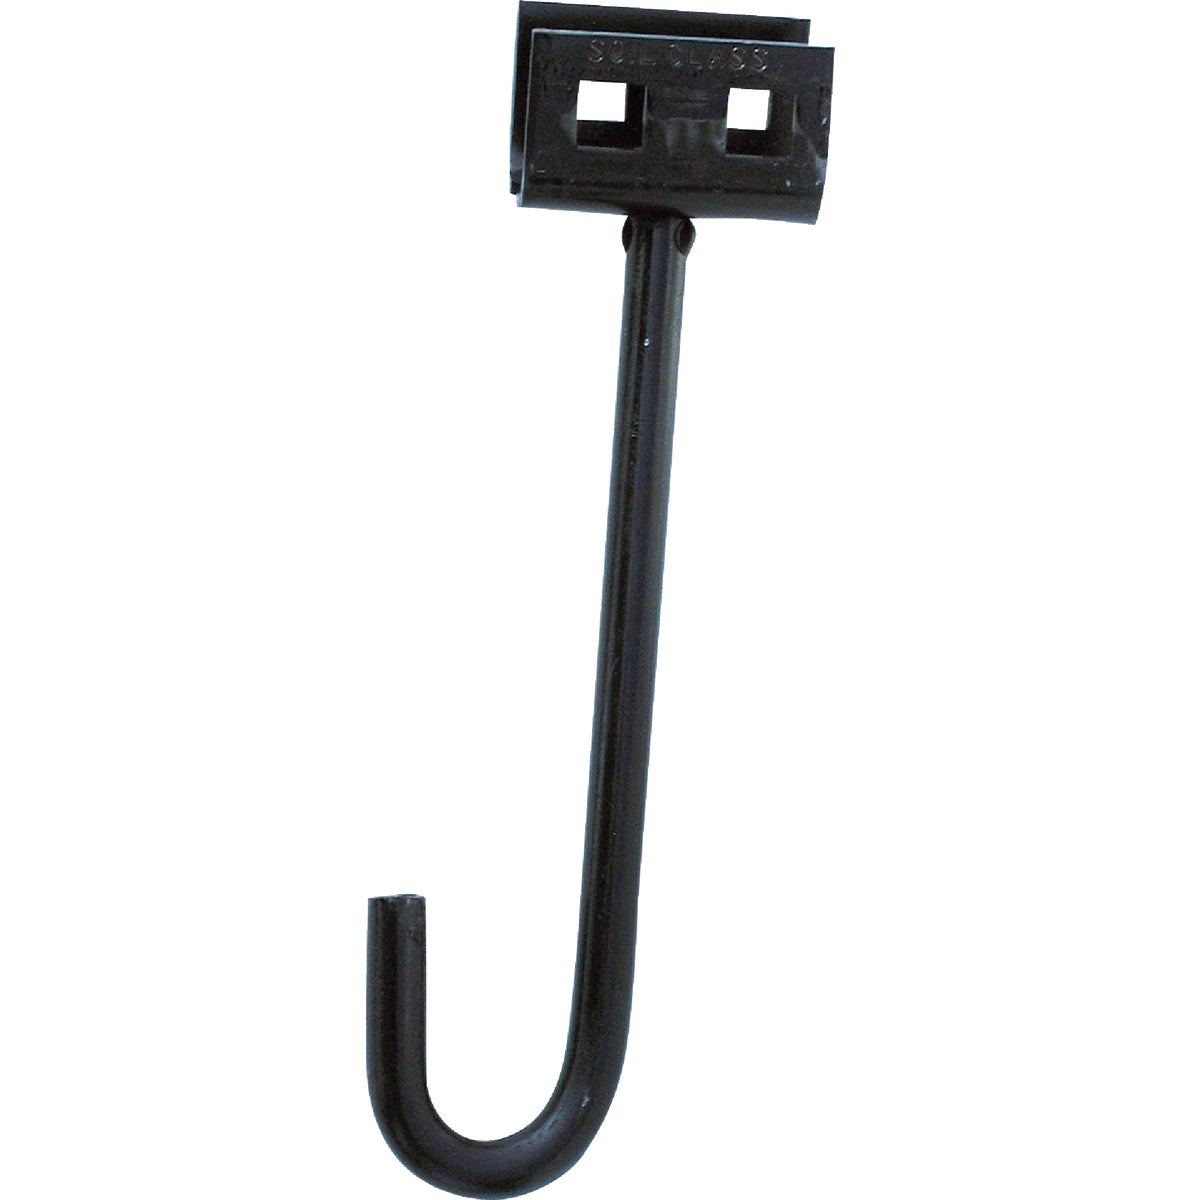 GALVANIZD J-ROD D ANCHOR - 59121L by Tie Down Engineering